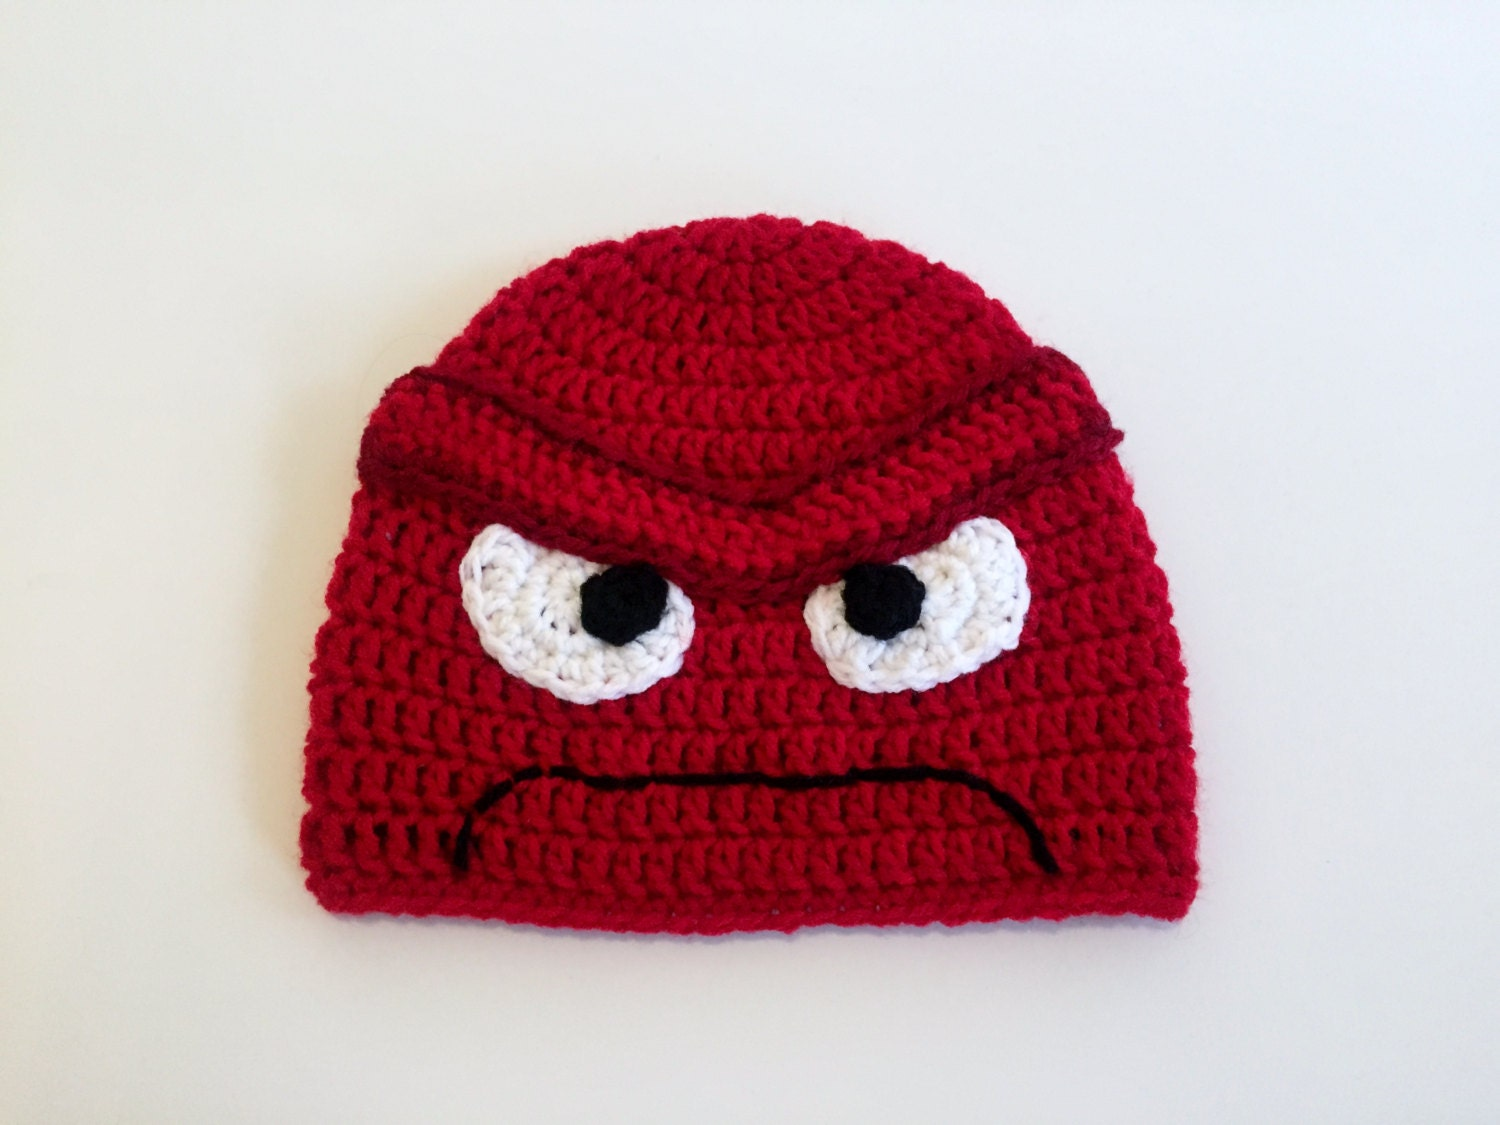 Free Crochet Hat Patterns For Halloween : Anger Hat Inside Out Beanie Crochet Halloween Costume All